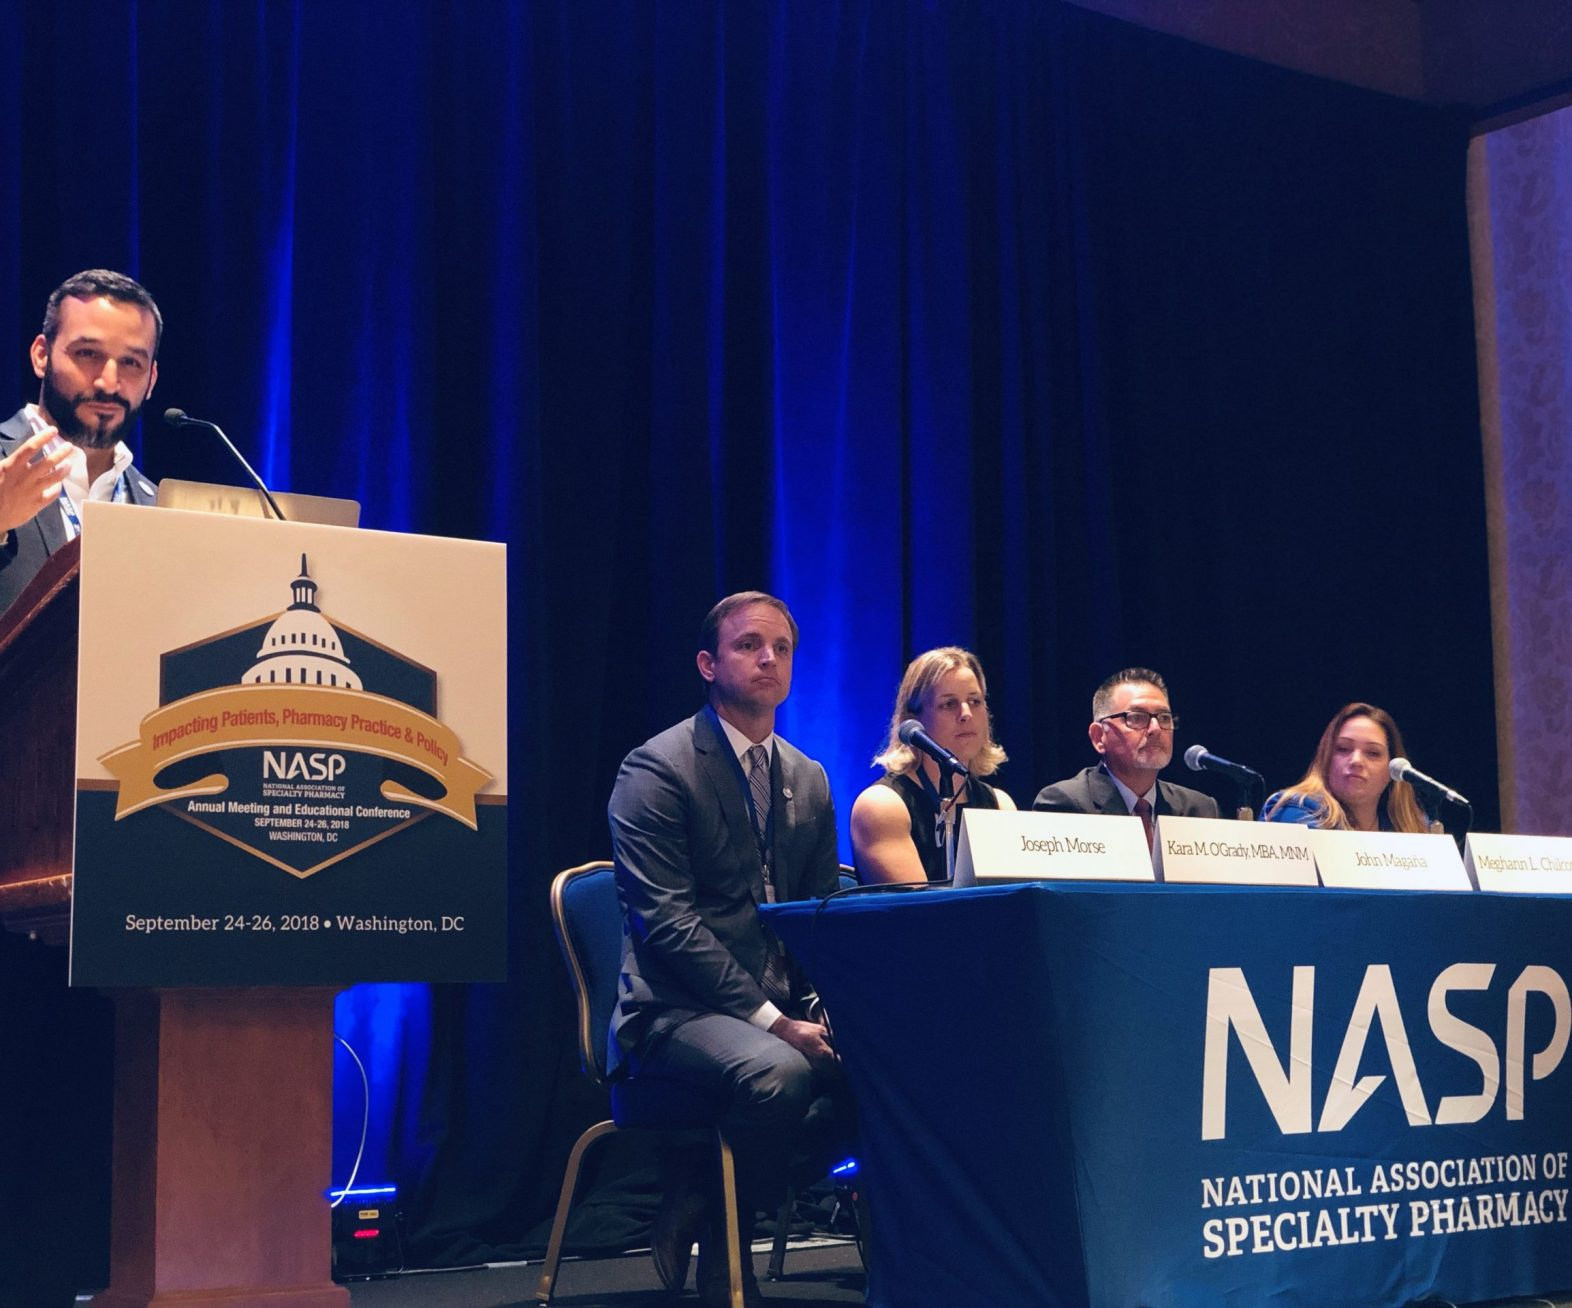 National Association of Specialty Pharmacies